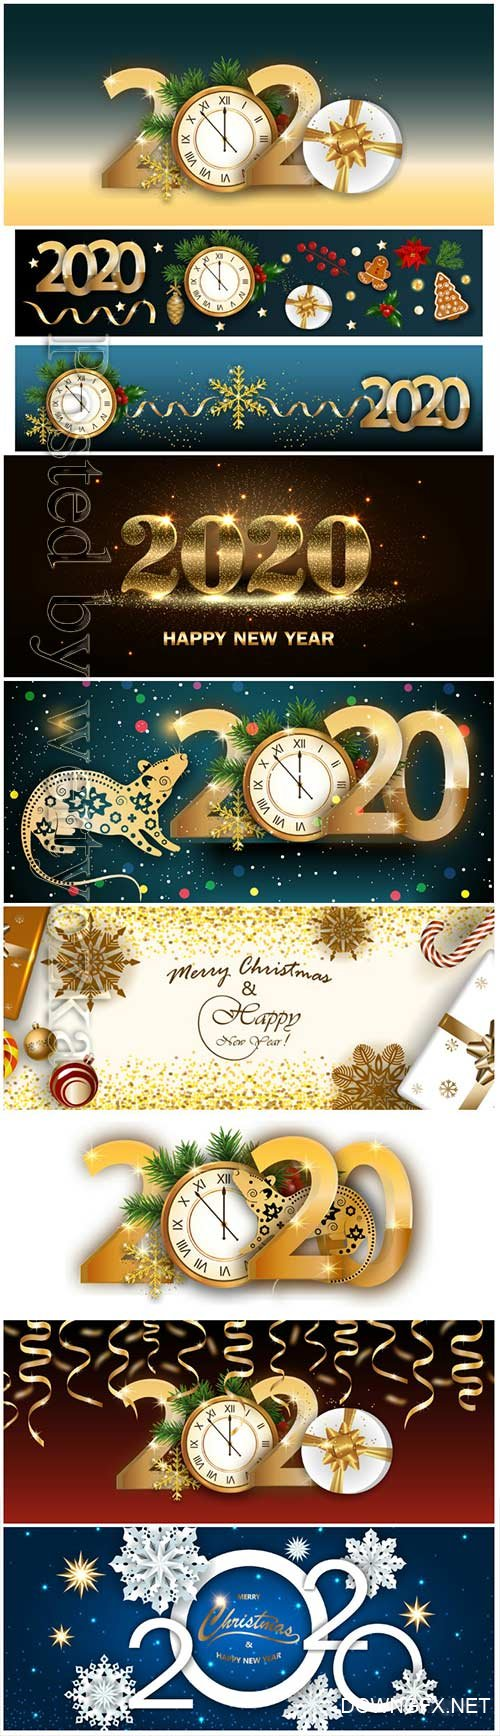 2020 Merry Chistmas and Happy New Year vector illustration # 12